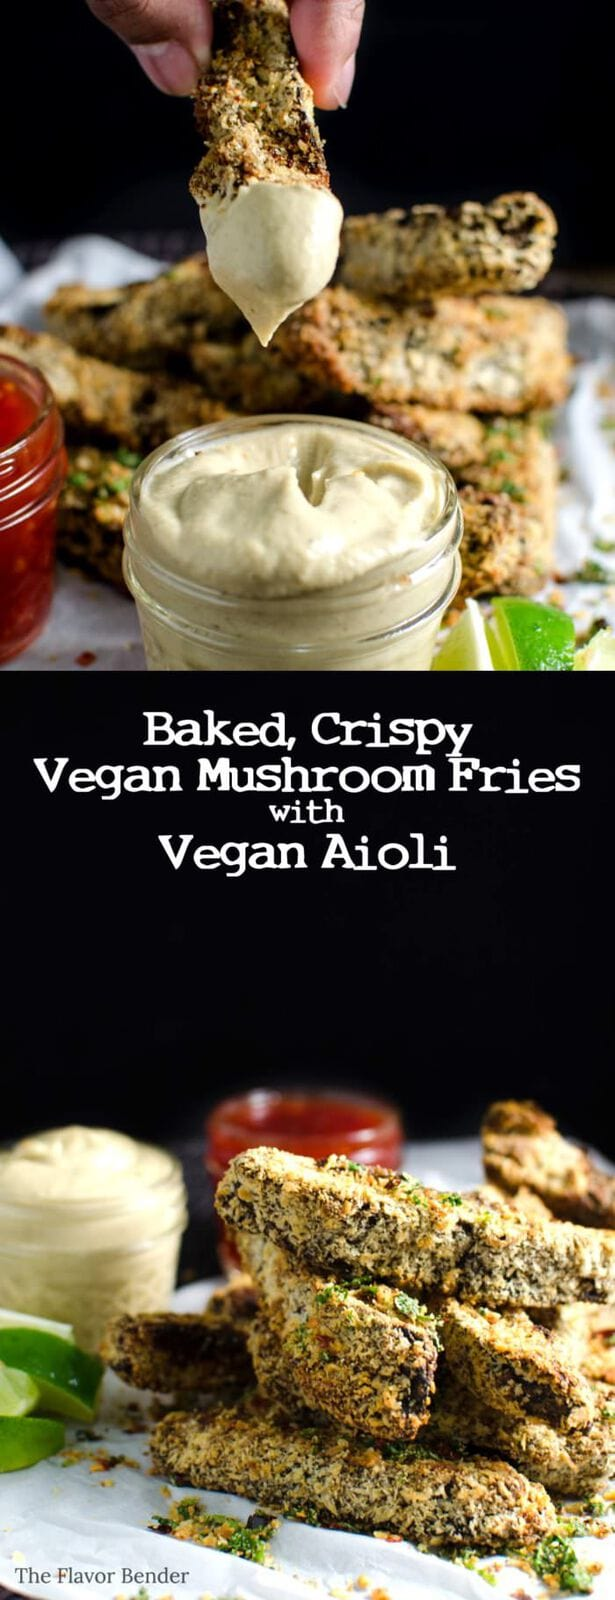 Baked Mushroom Fries and Vegan Aioli - This delicious Vegan recipe is an incredibly flavourful twist on a classic, that's perfect as a party or game day appetizer or even a complete meal! PLUS learn how to make Vegan Aioli that tastes like the real thing.